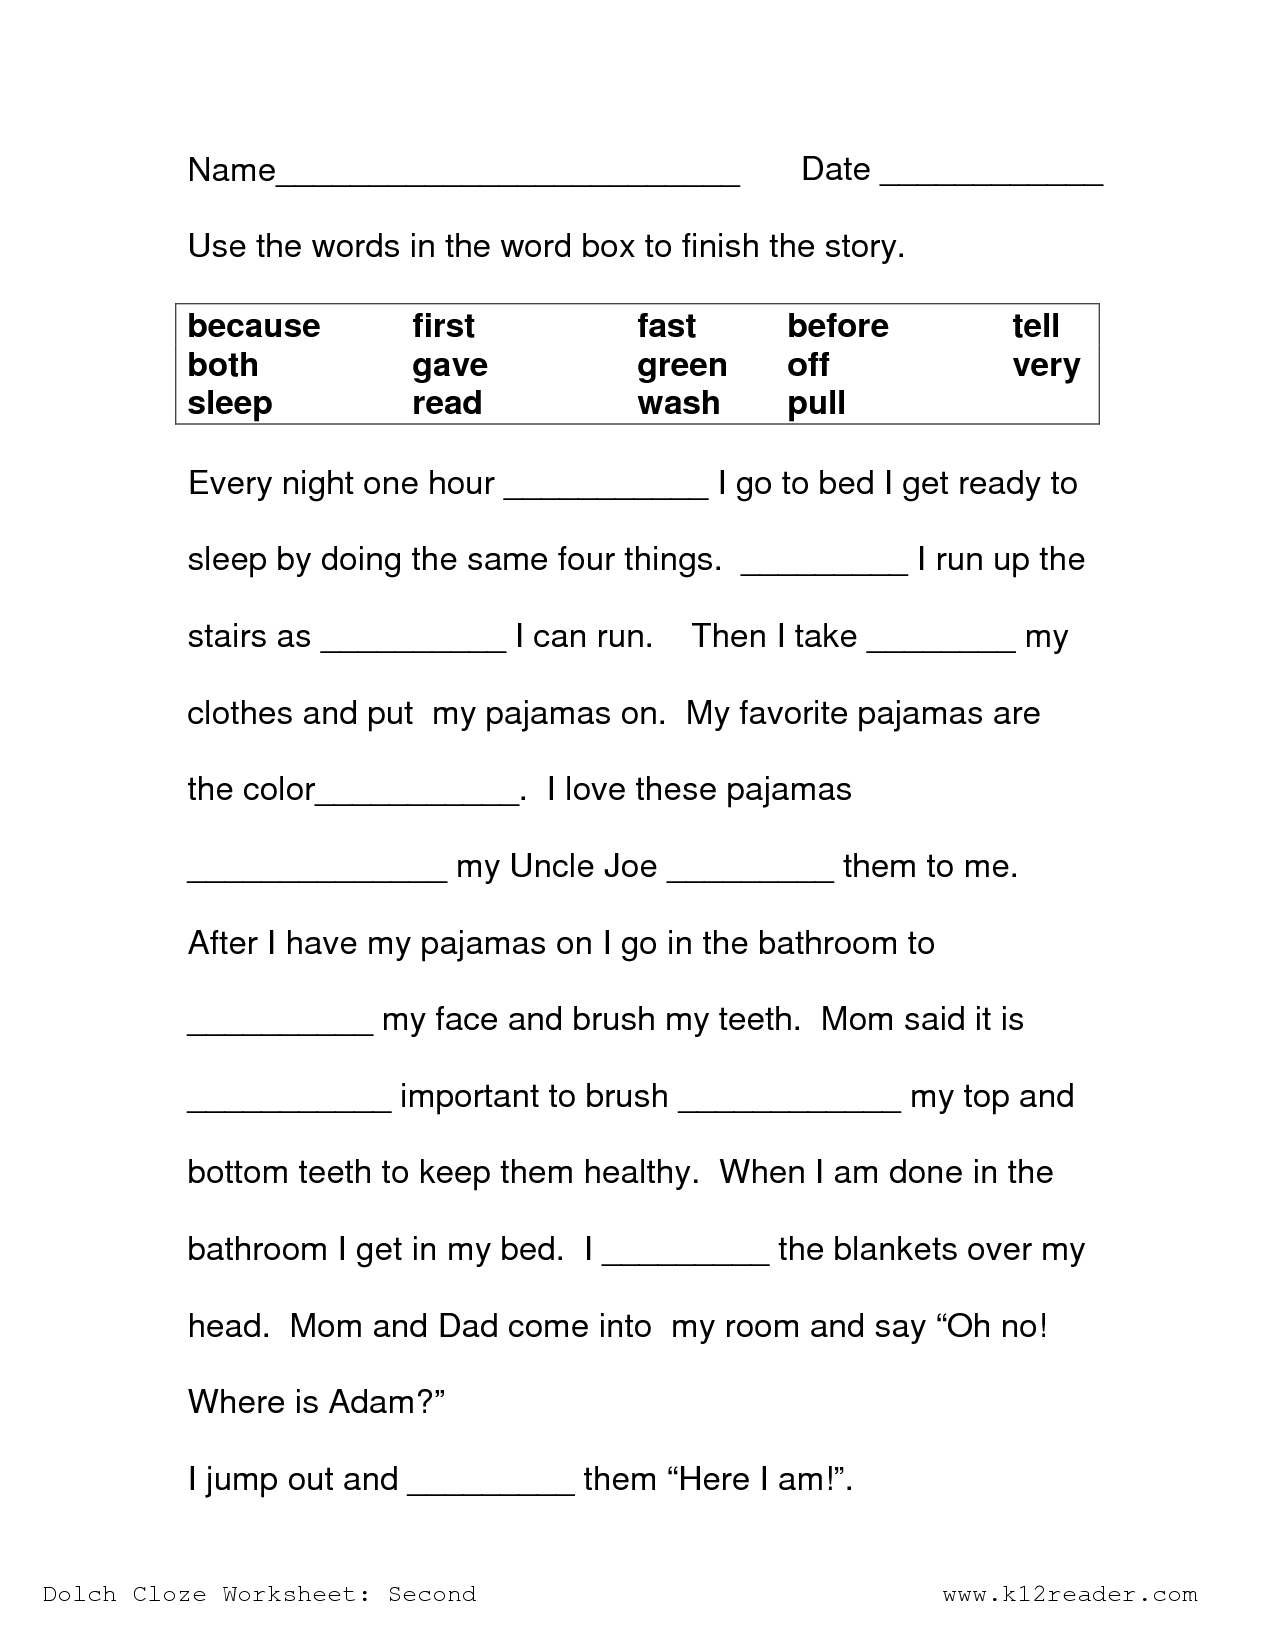 Worksheet Free 2nd Grade Reading Comprehension Worksheets reading worksheets 2nd grade pichaglobal k5 related